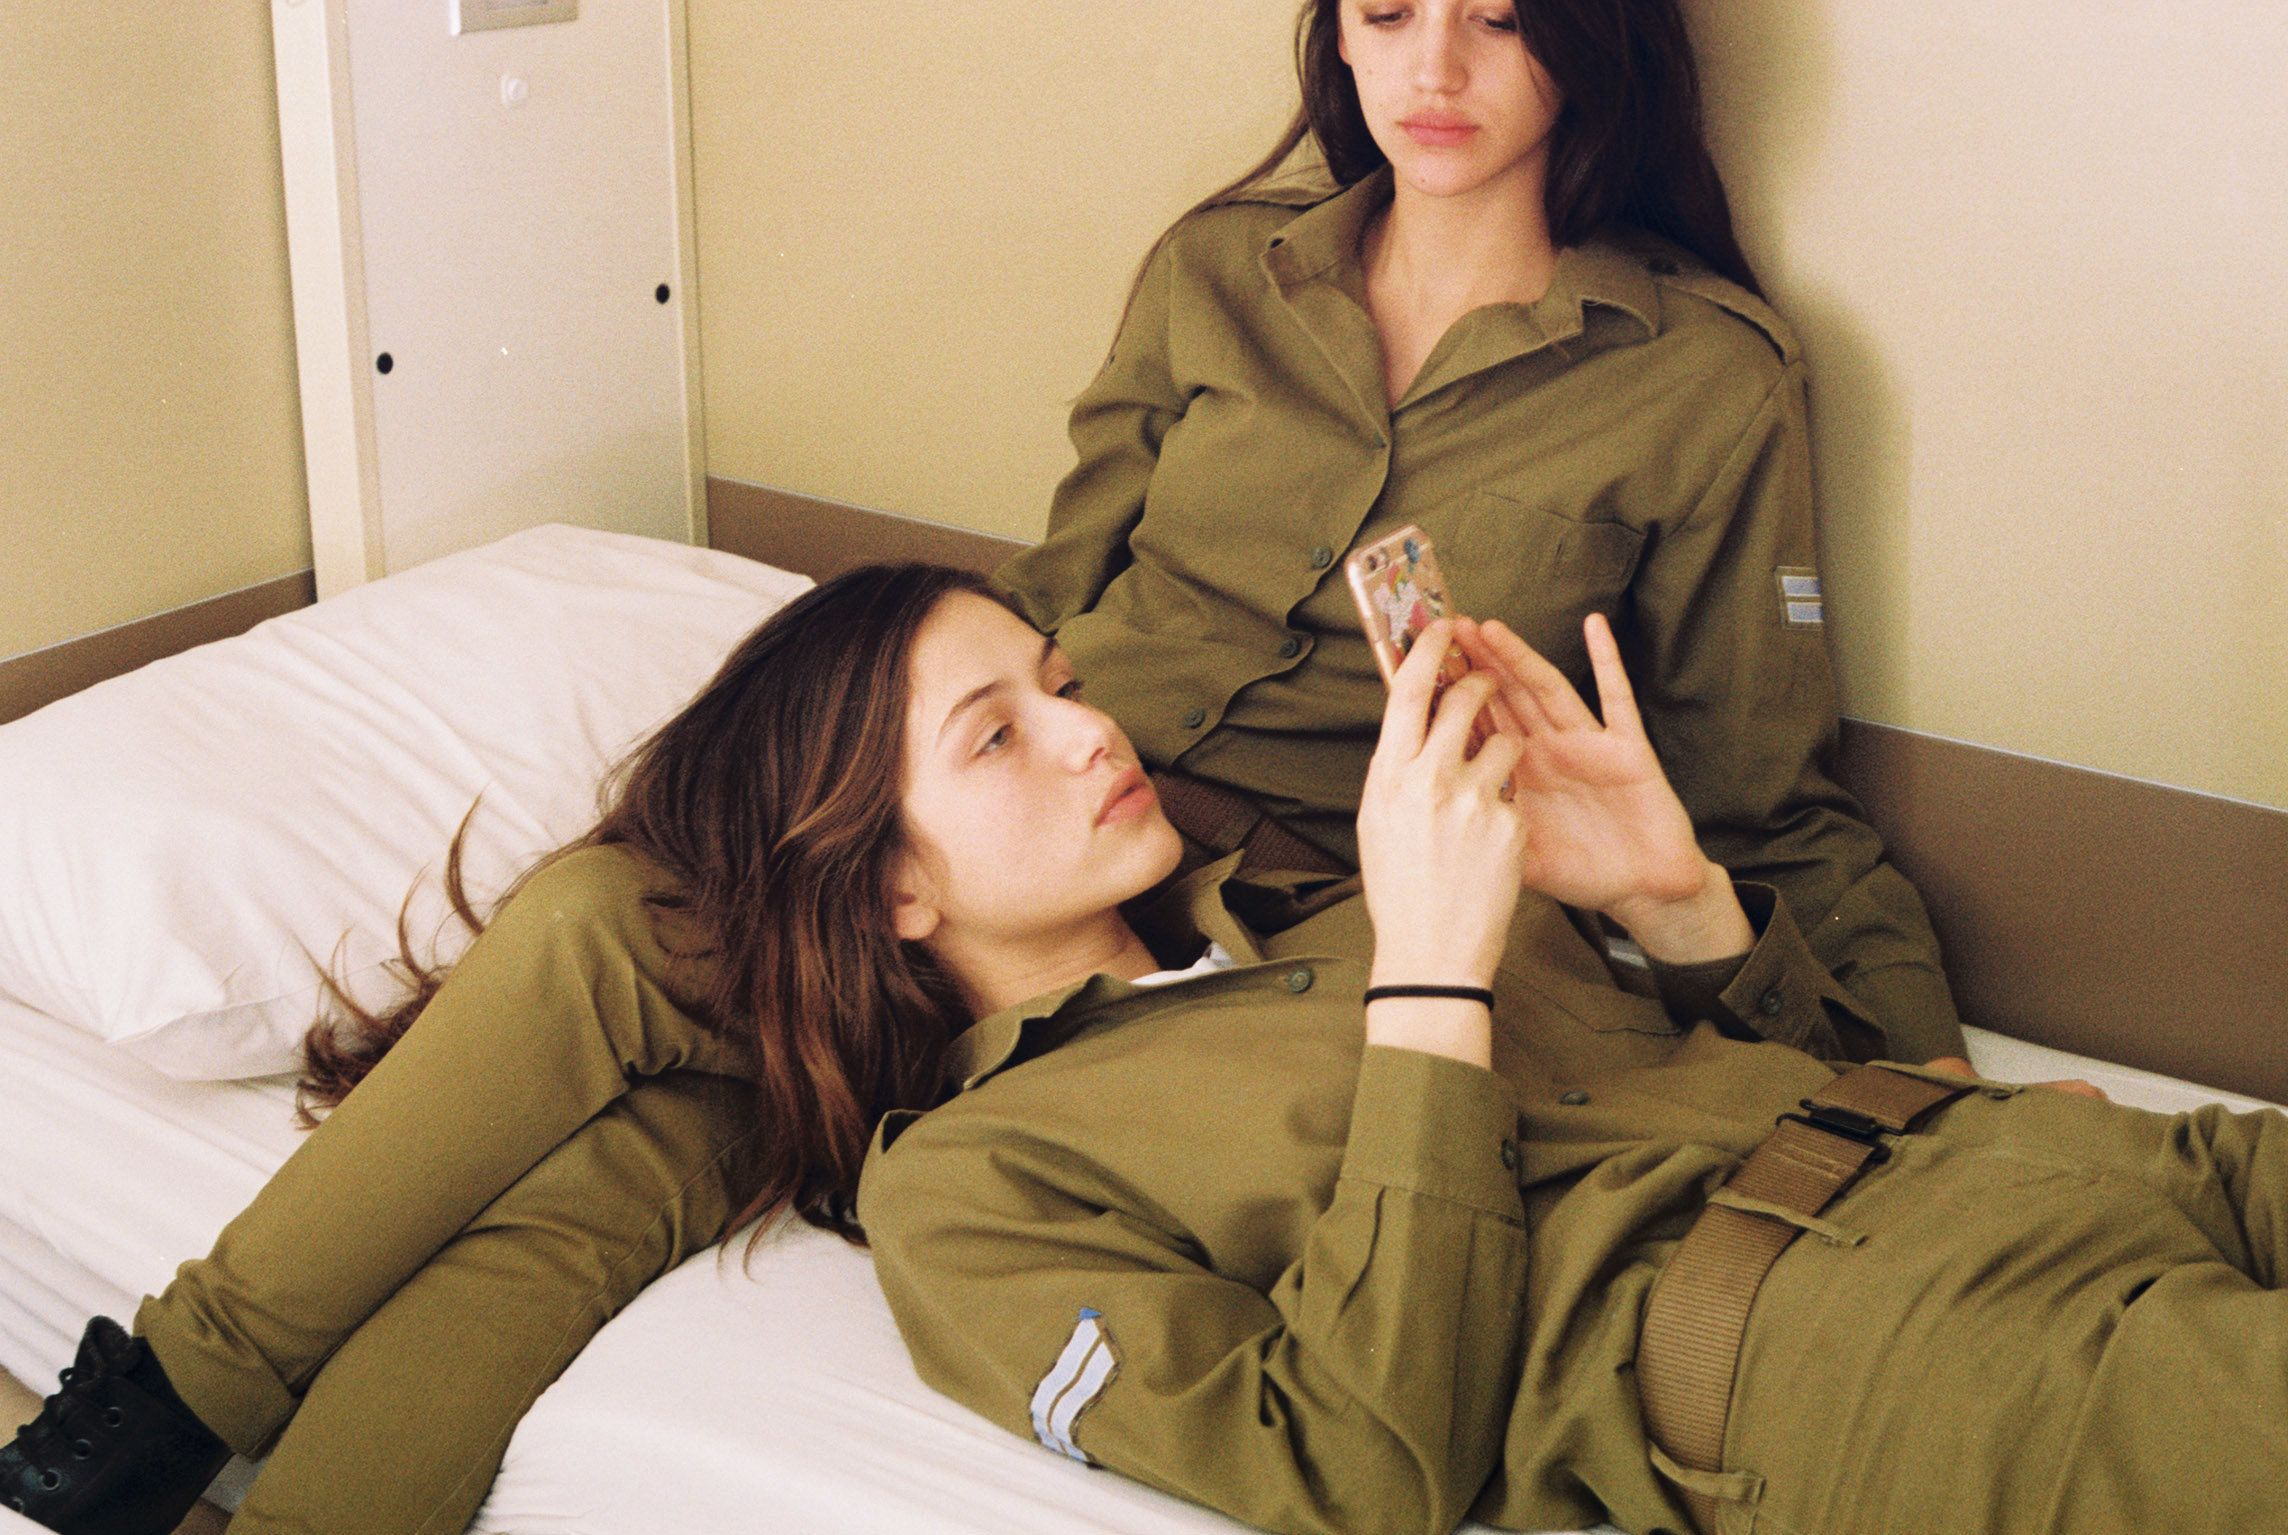 Something Hot israeli women soldiers